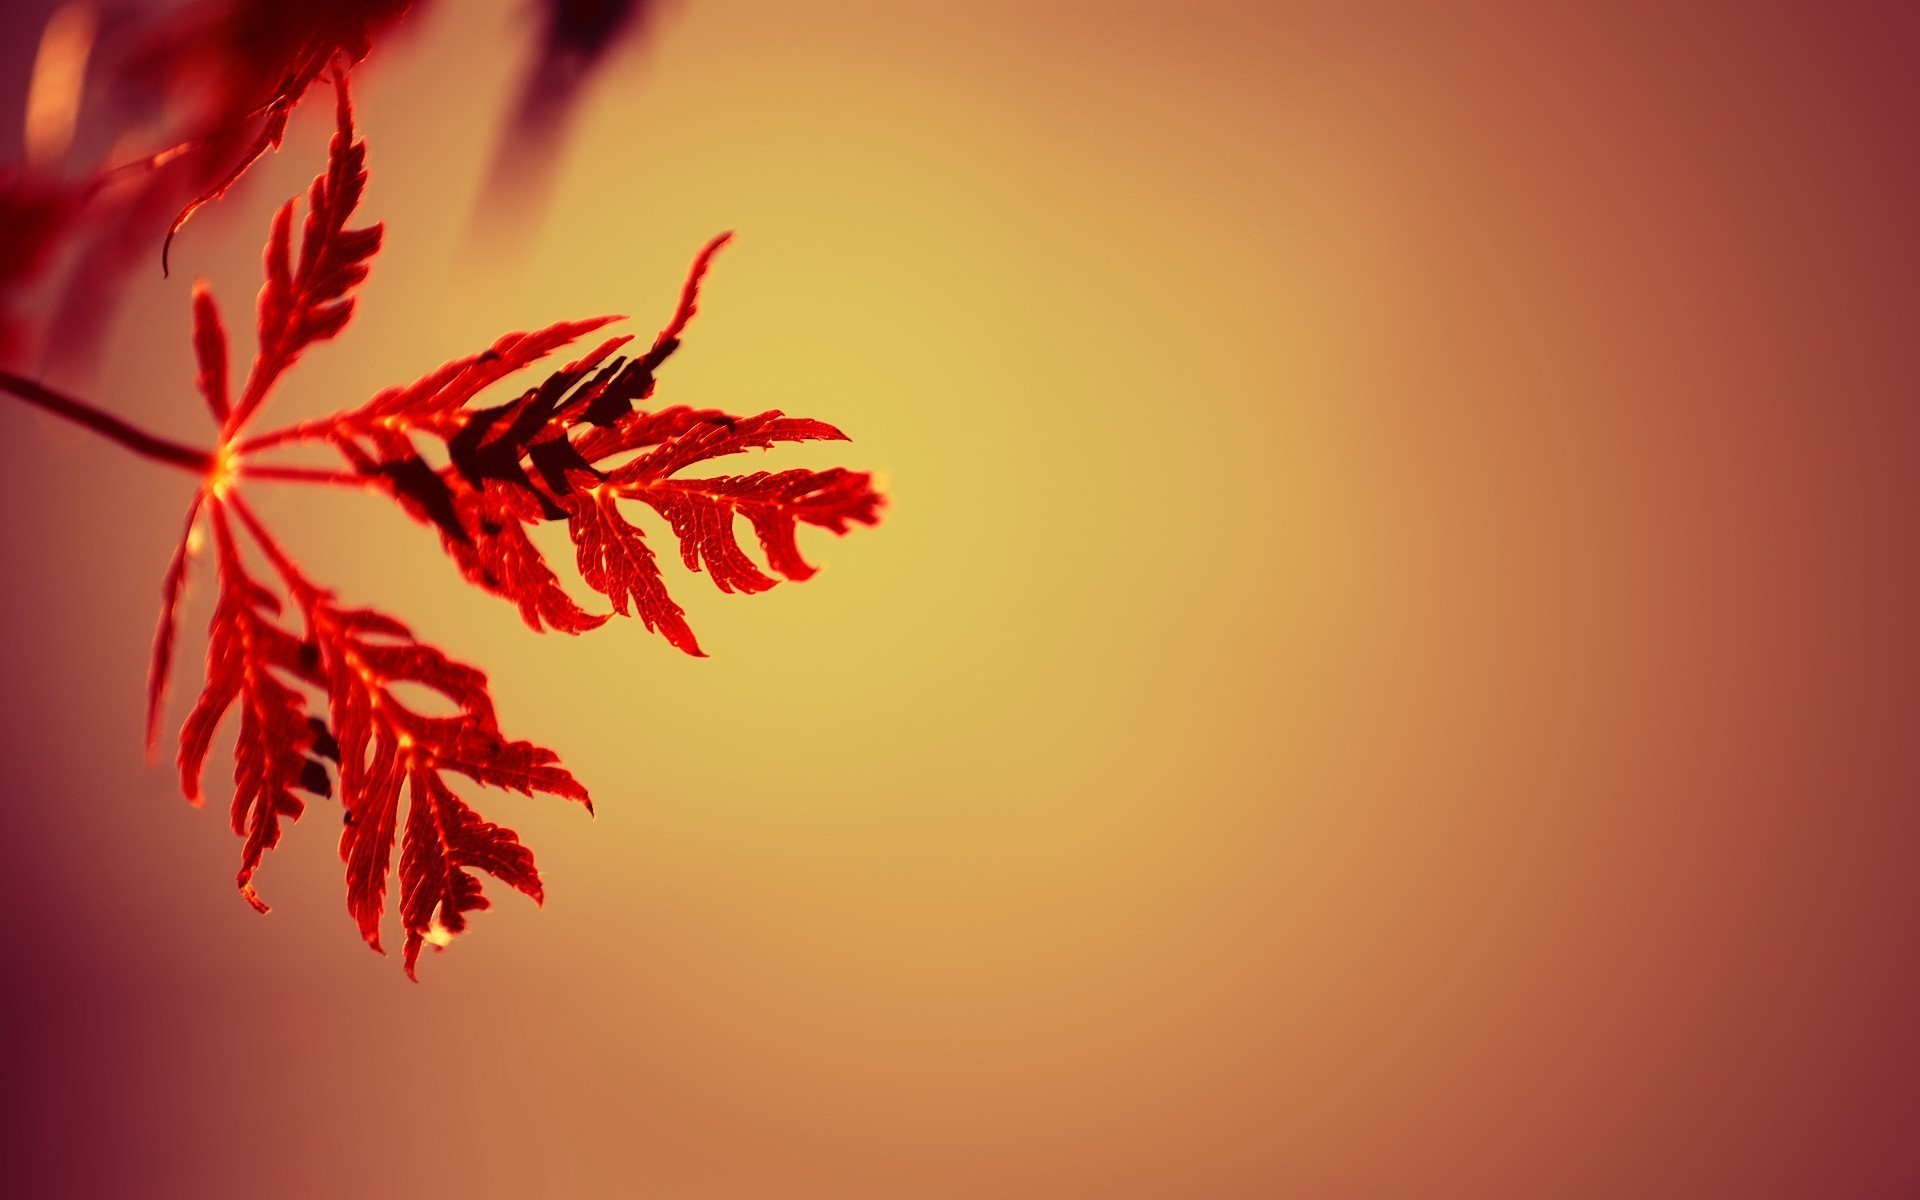 Fall Leaves Computer Wallpaper Nature Simple Simple Background Leaves Gradient Depth